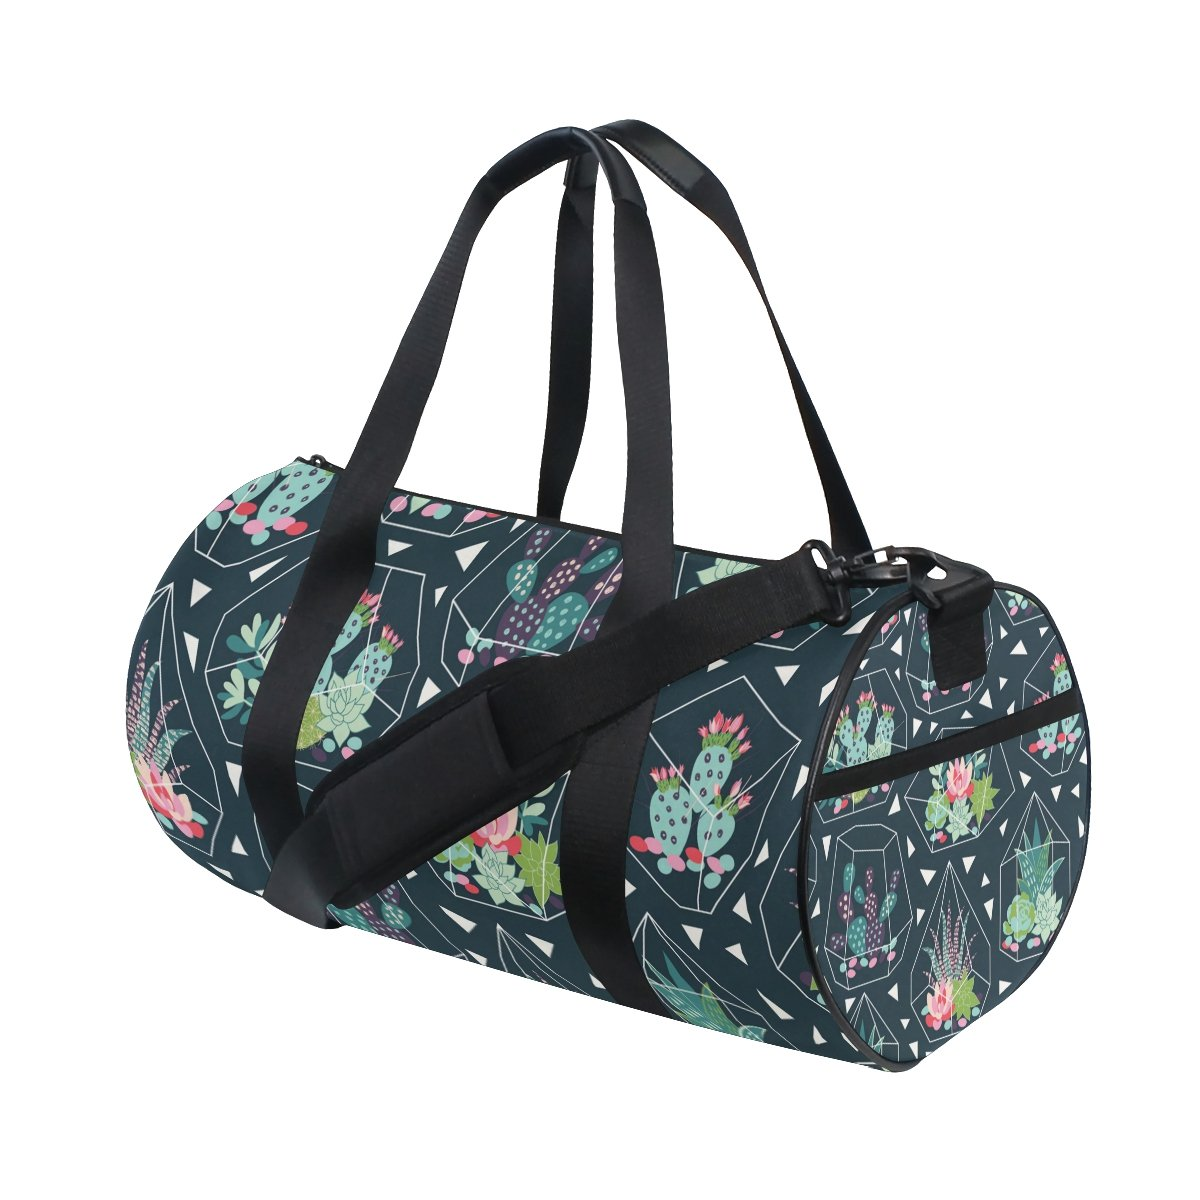 EVERUI Cactus Pattern Travel Duffle Bag Sports Luggage with Backpack Tote Gym Bag for Man and Women